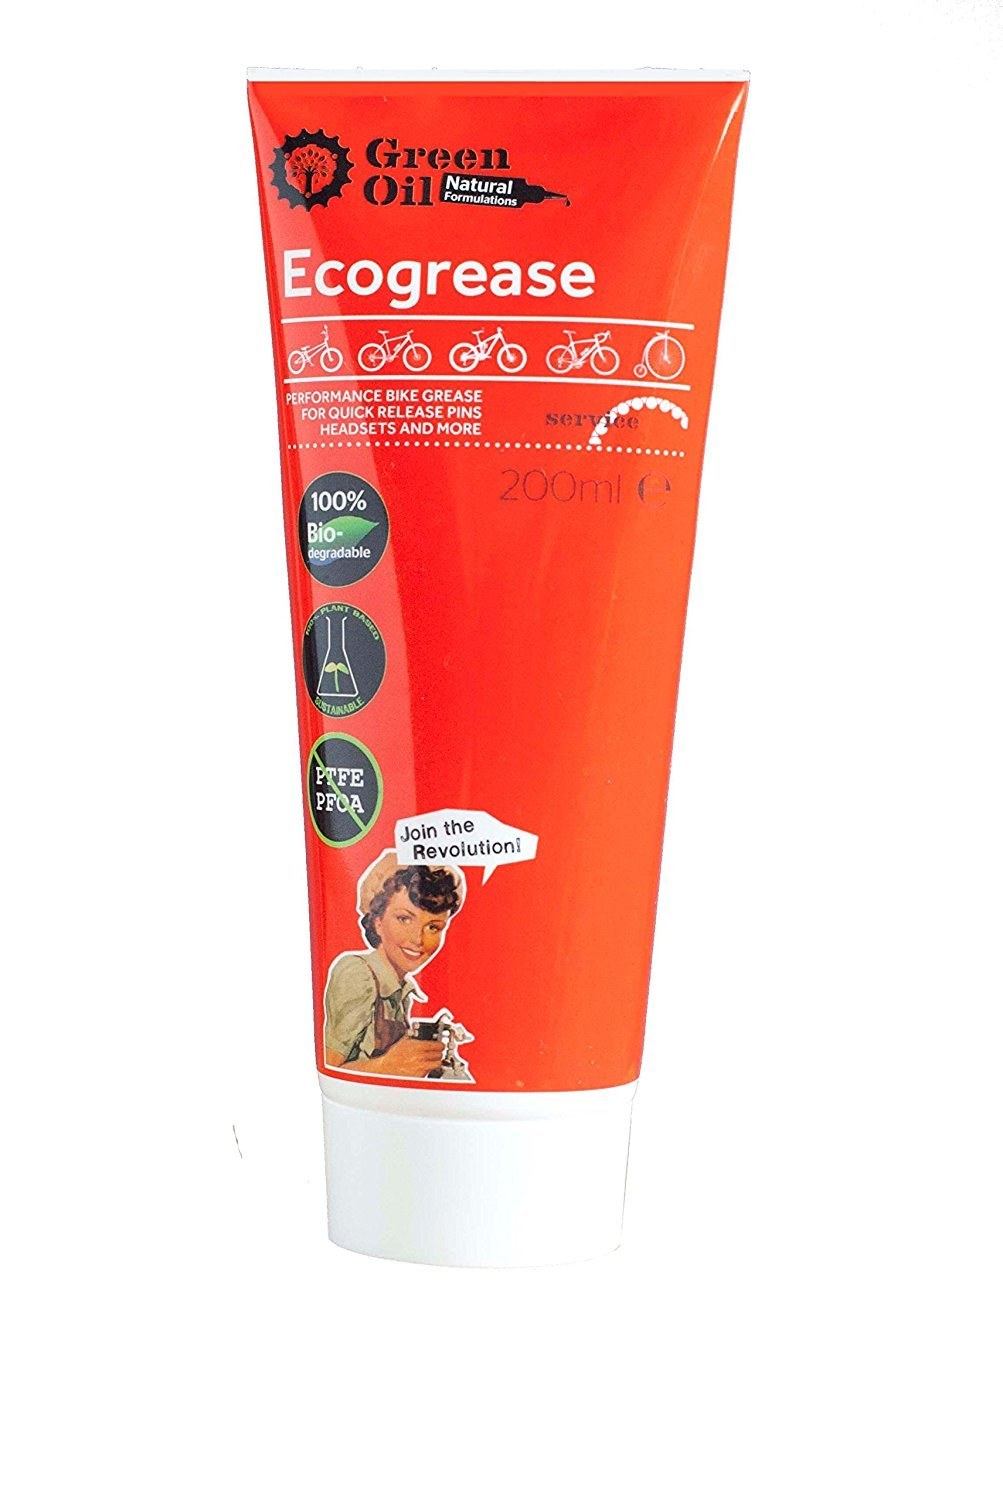 GREEN OIL - Ecogrease Best & Long Lasting Bicycle Grease - 200ML Tube